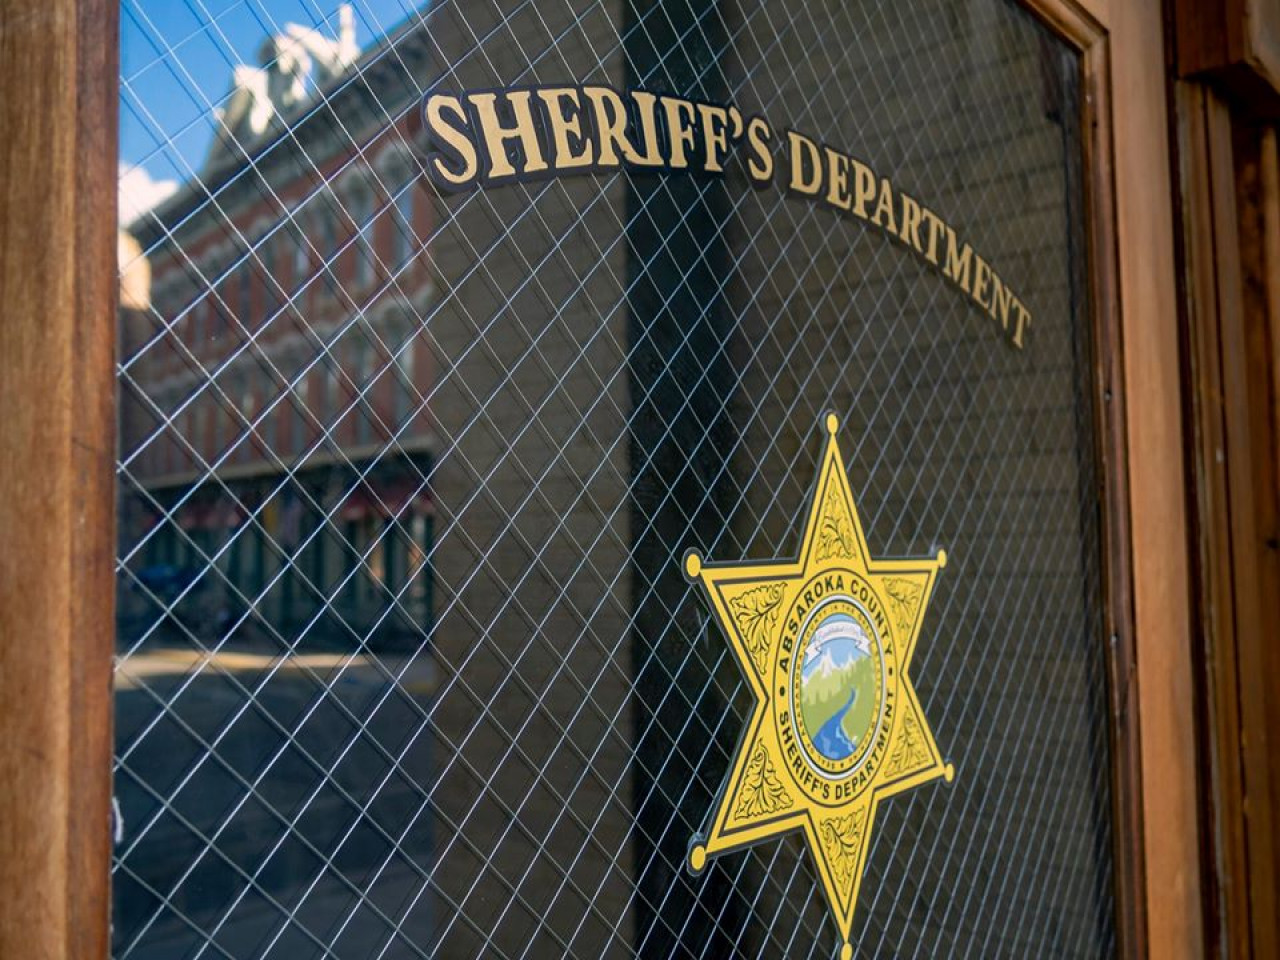 Thanks to a smart business owner, the entrance door still sports the Absaroka County Sheriff's Department badge.